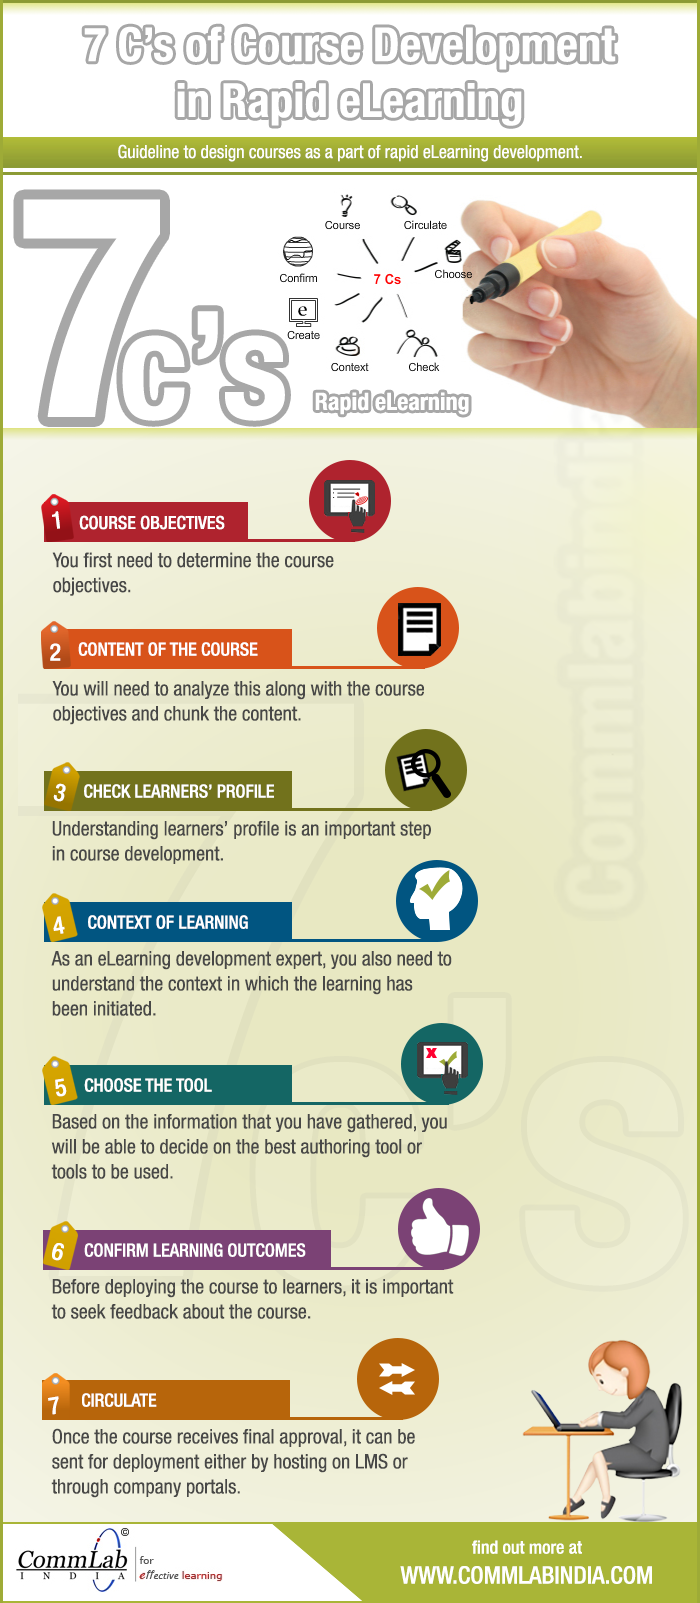 7Cs of Rapid E-learning Development - An Infographic